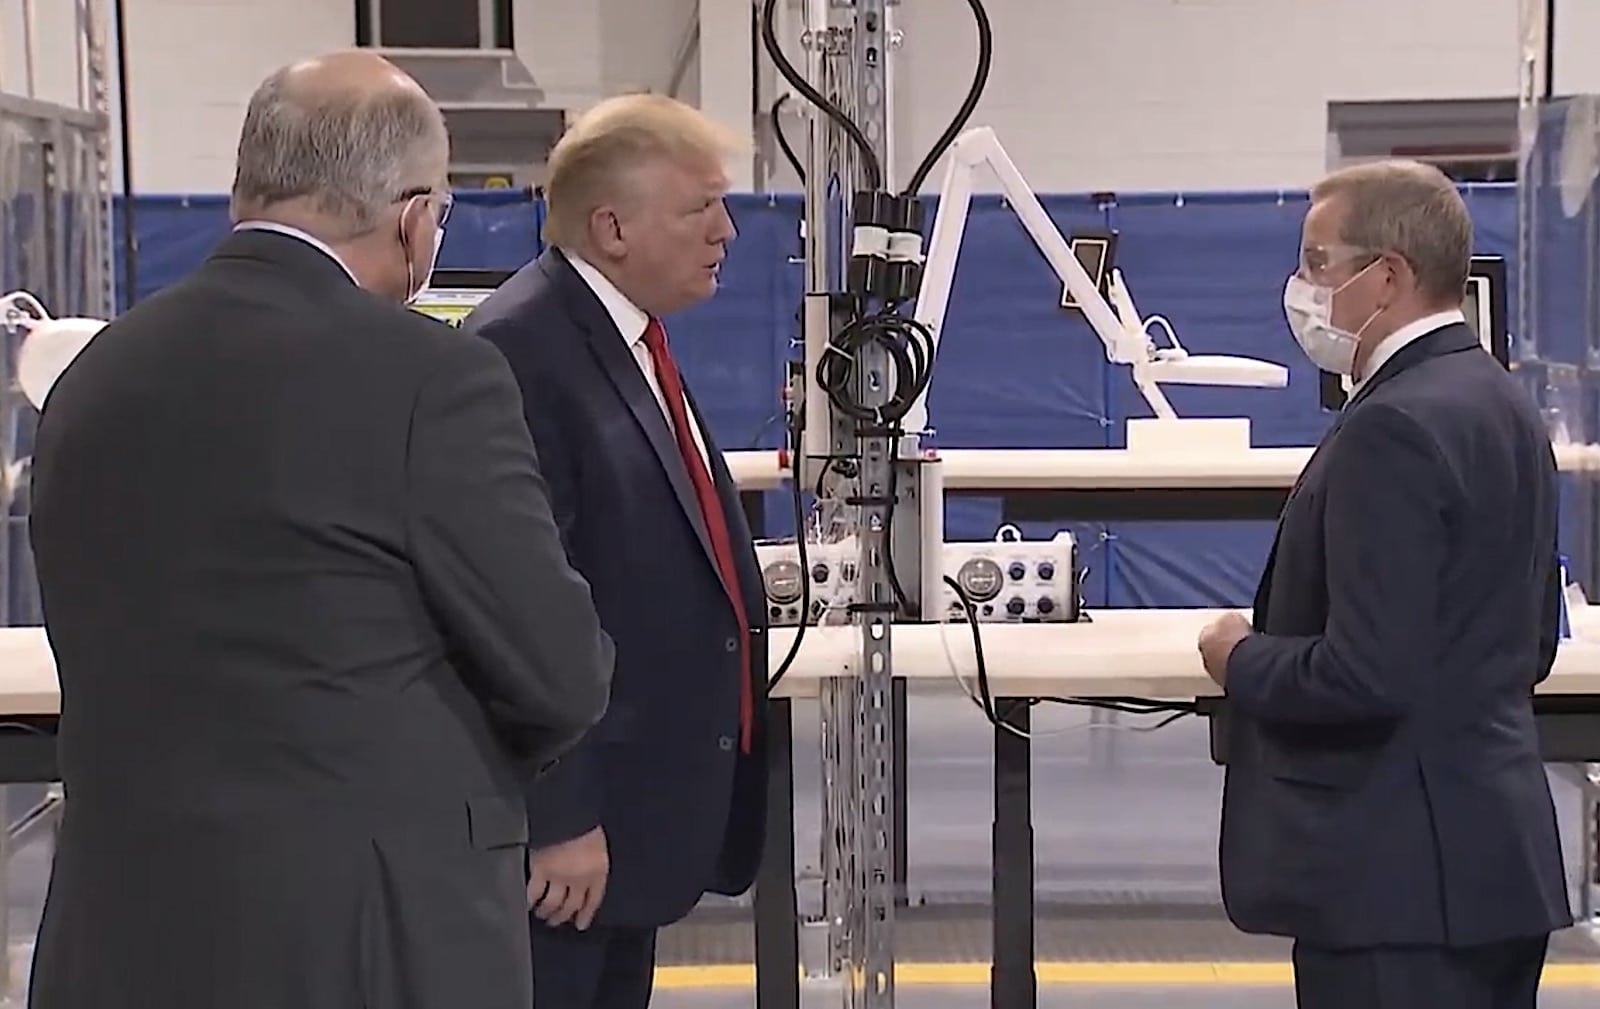 Trump tours Ford plant without a mask, defying company policy